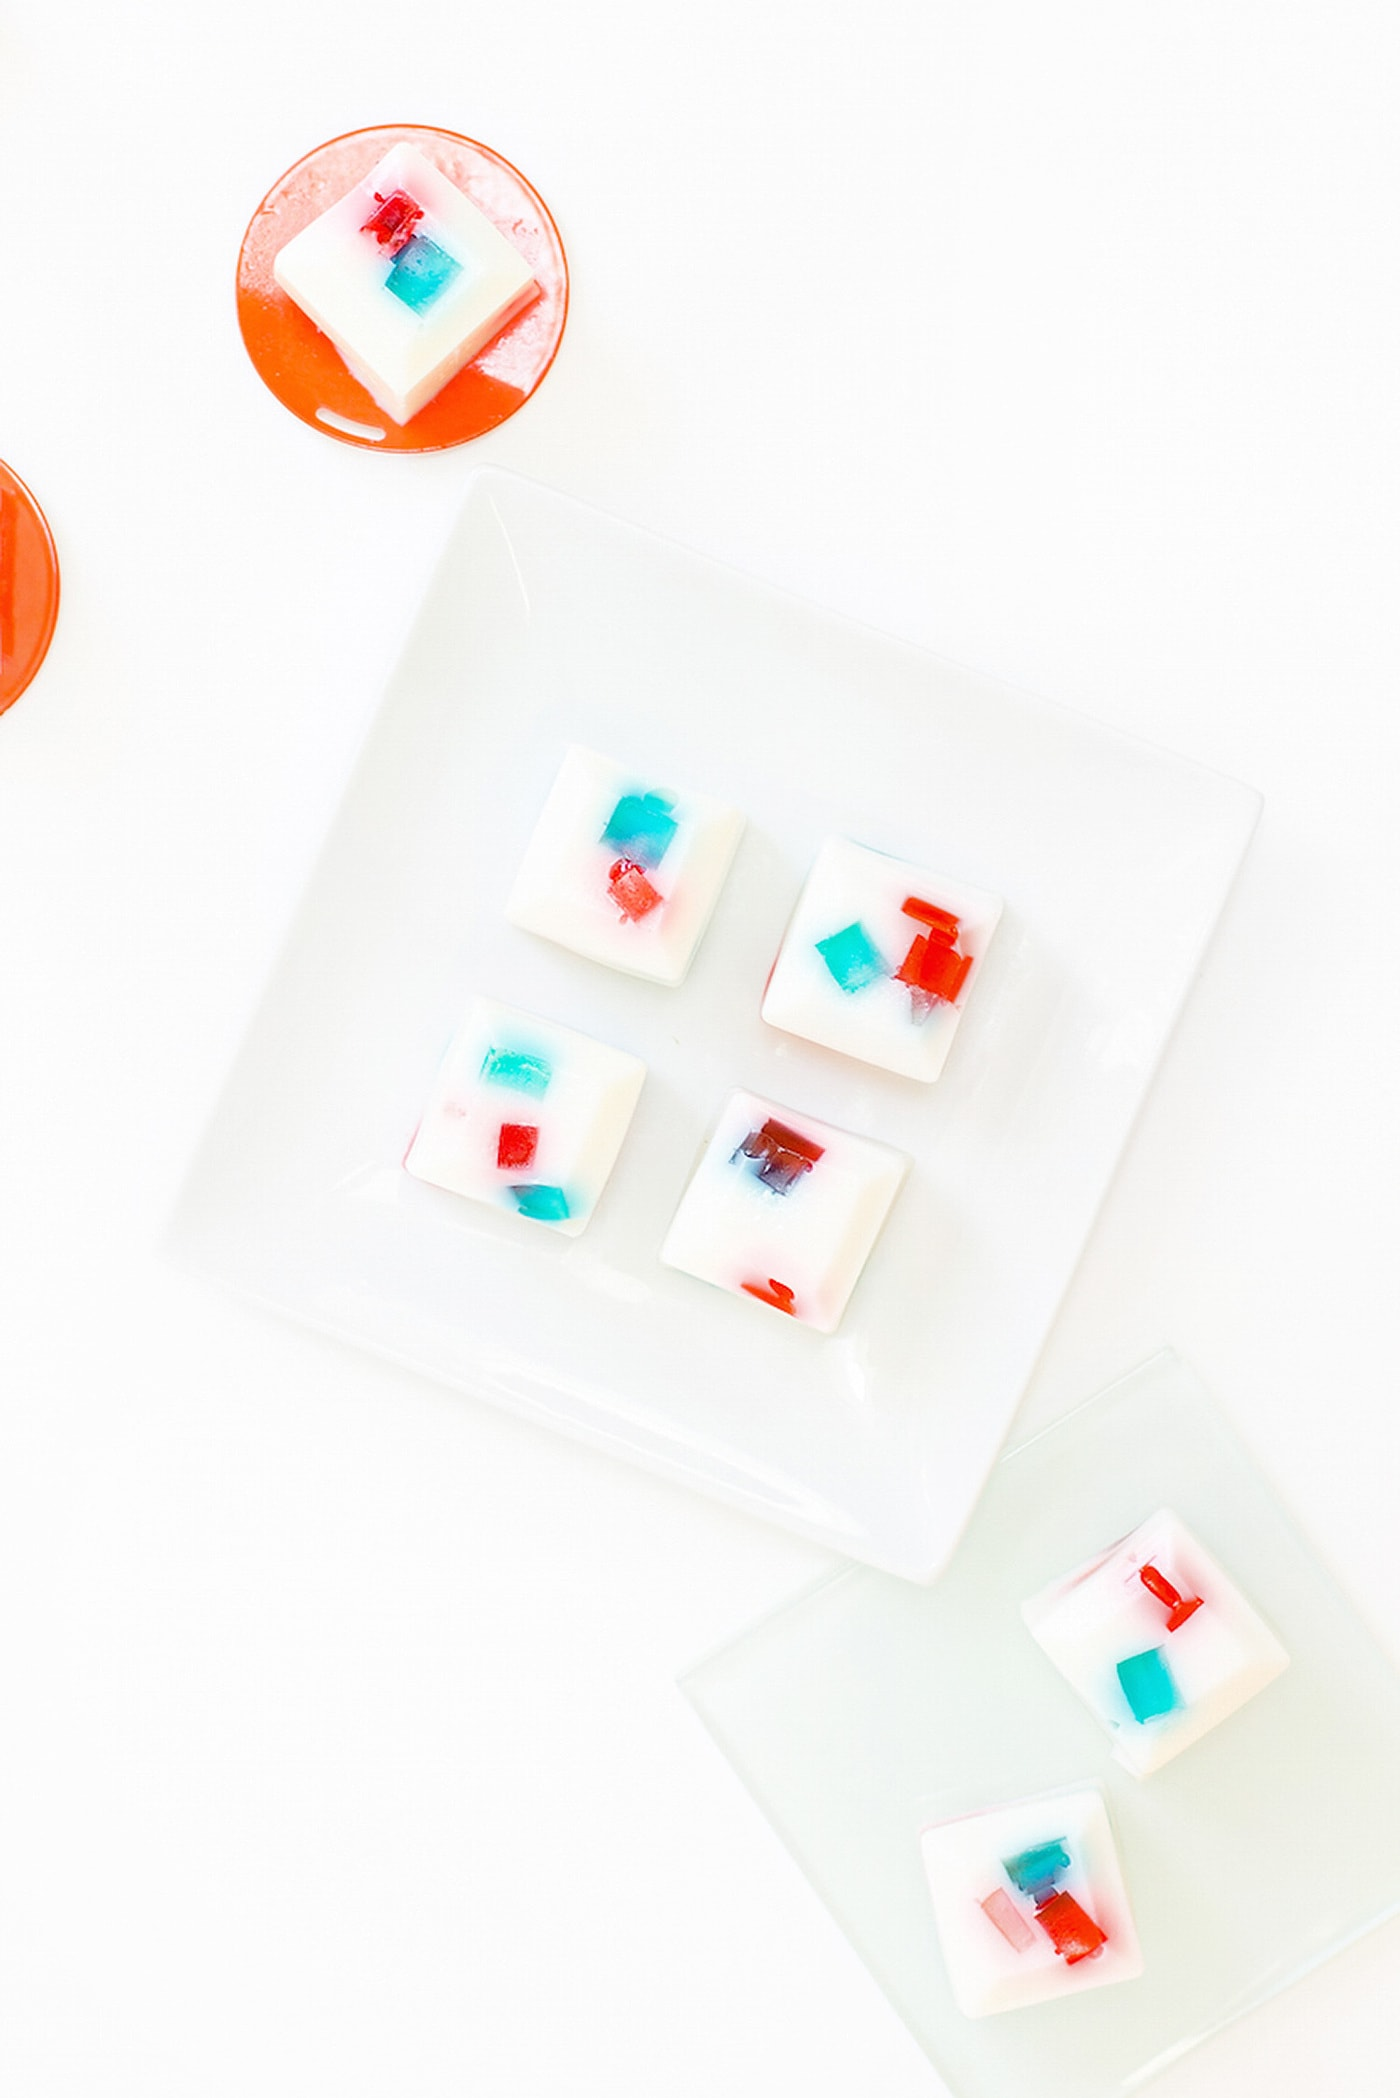 overhead photo of jello shots for the 4th of july on a plate